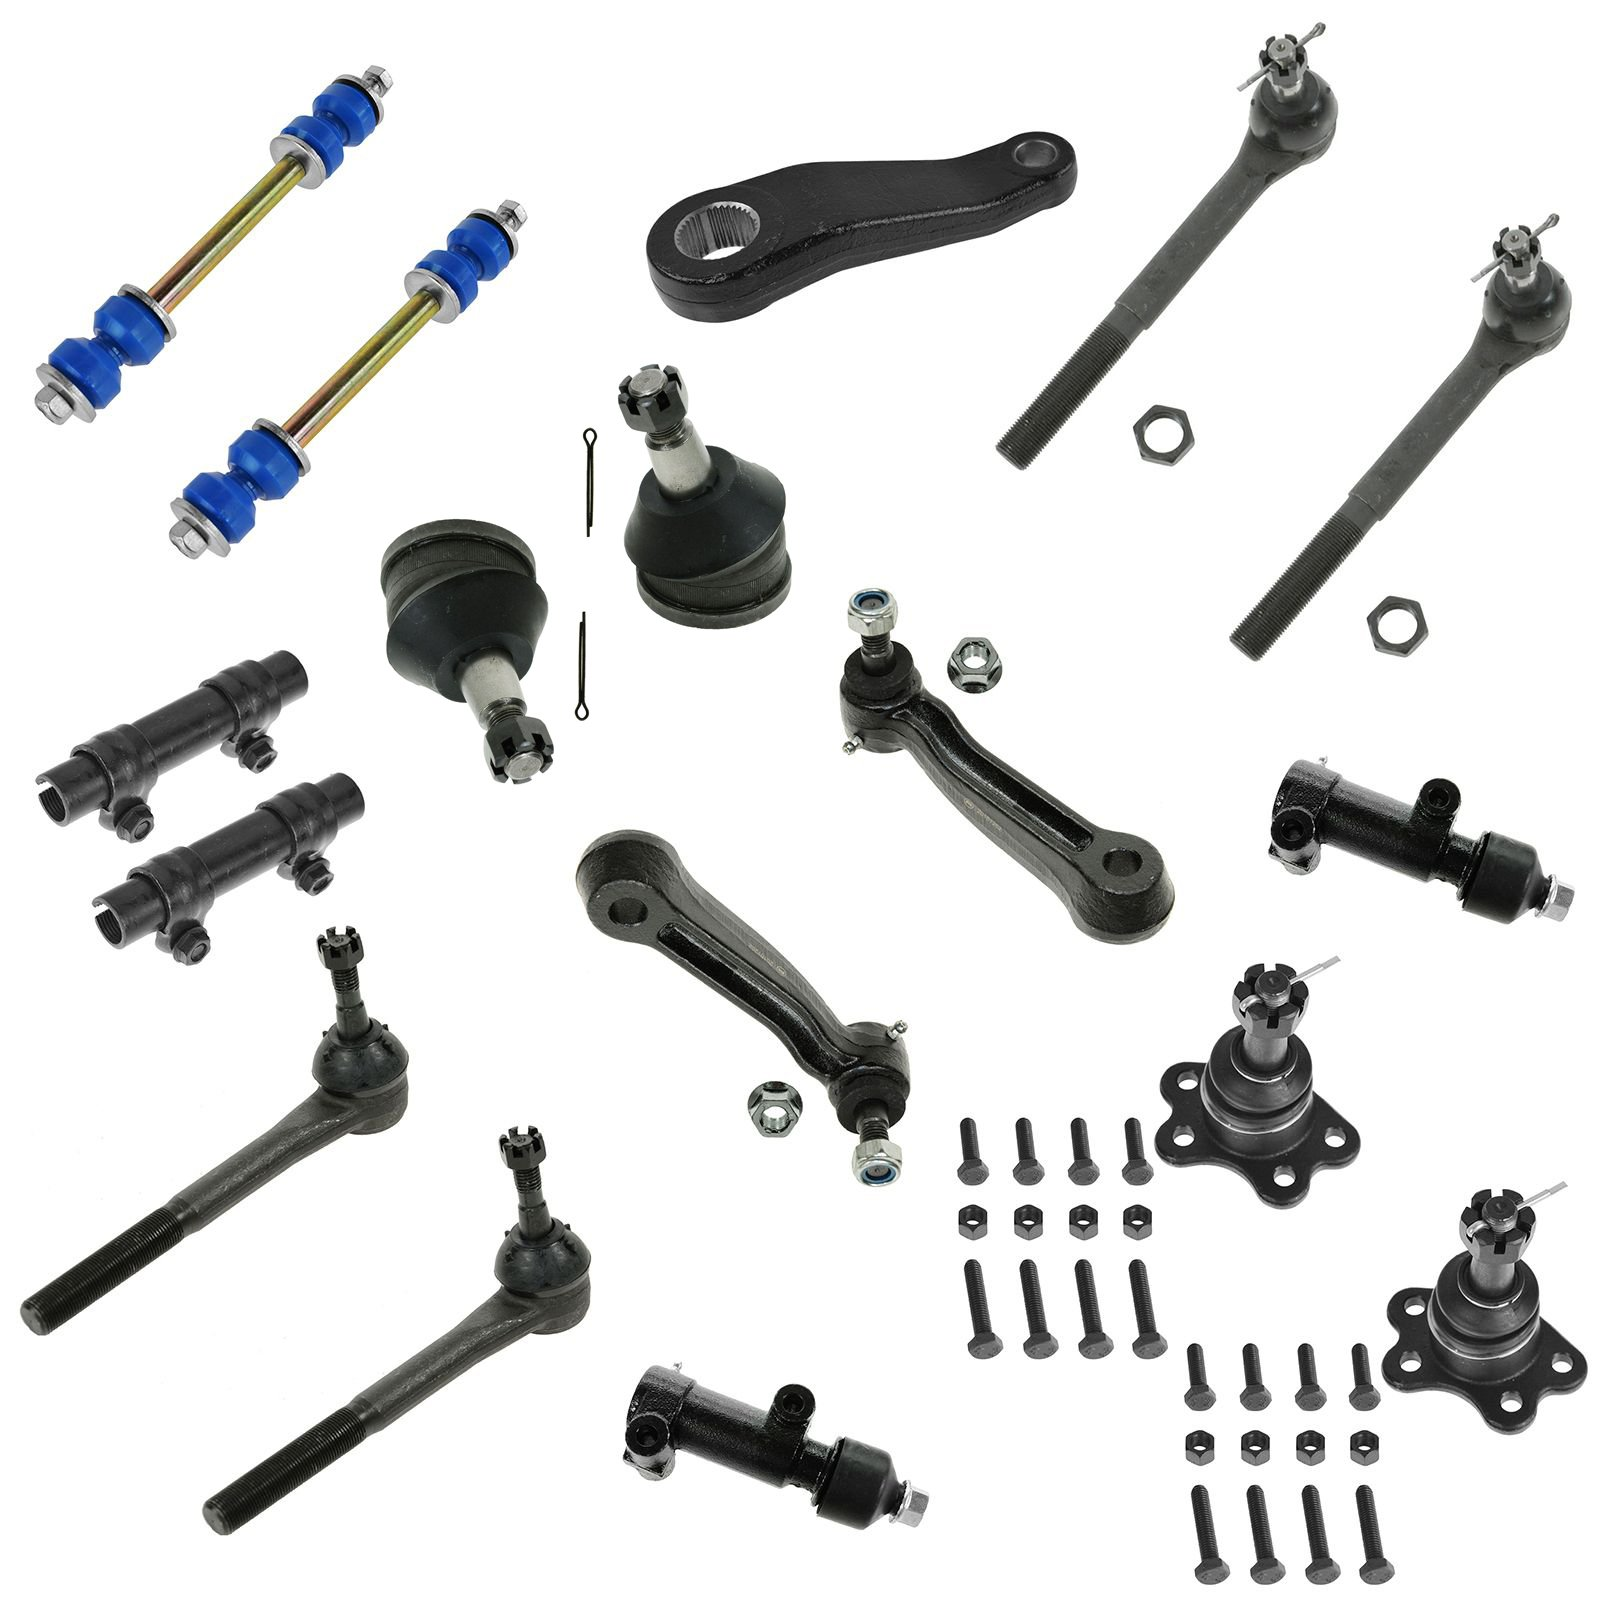 17 Piece Steering & Suspension Kit Ball Joints Tie Rods Idler Arm Sway Bar Links for Chevy Express 1500 Van Express 2500 Van GMC Savana 2500 Van by TRQ